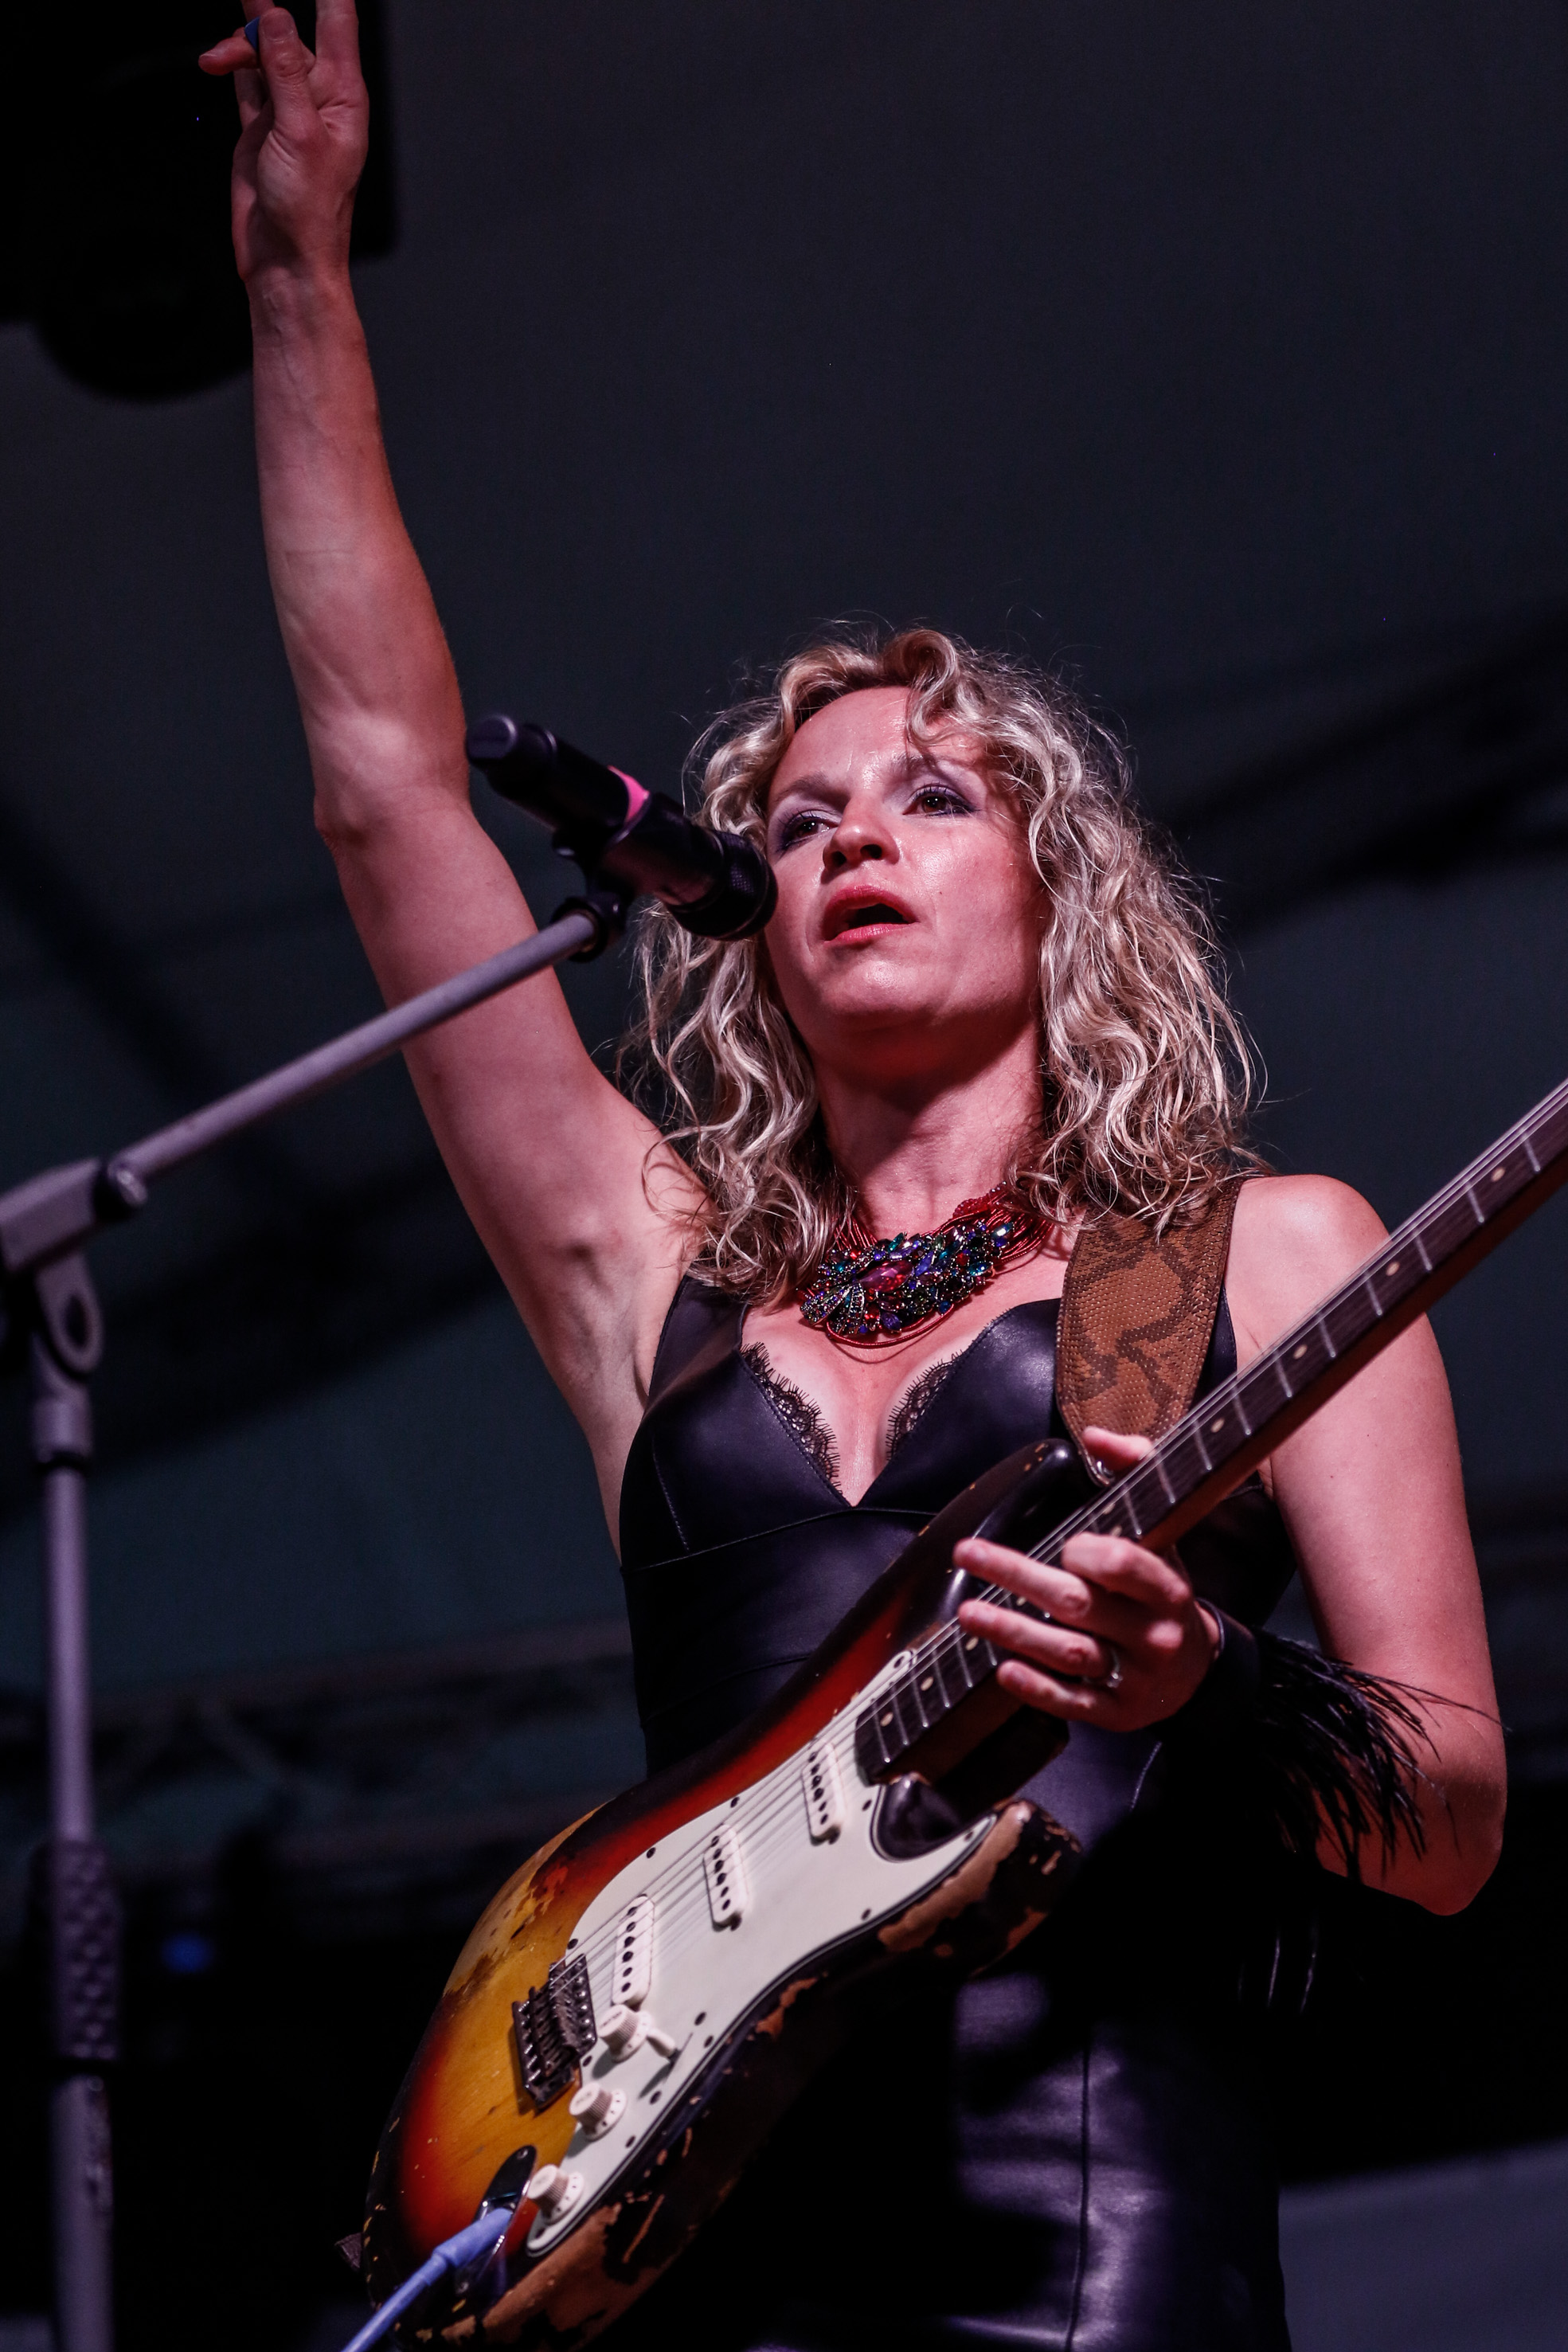 Ana Popovic – Chiari Blues Festival 2019